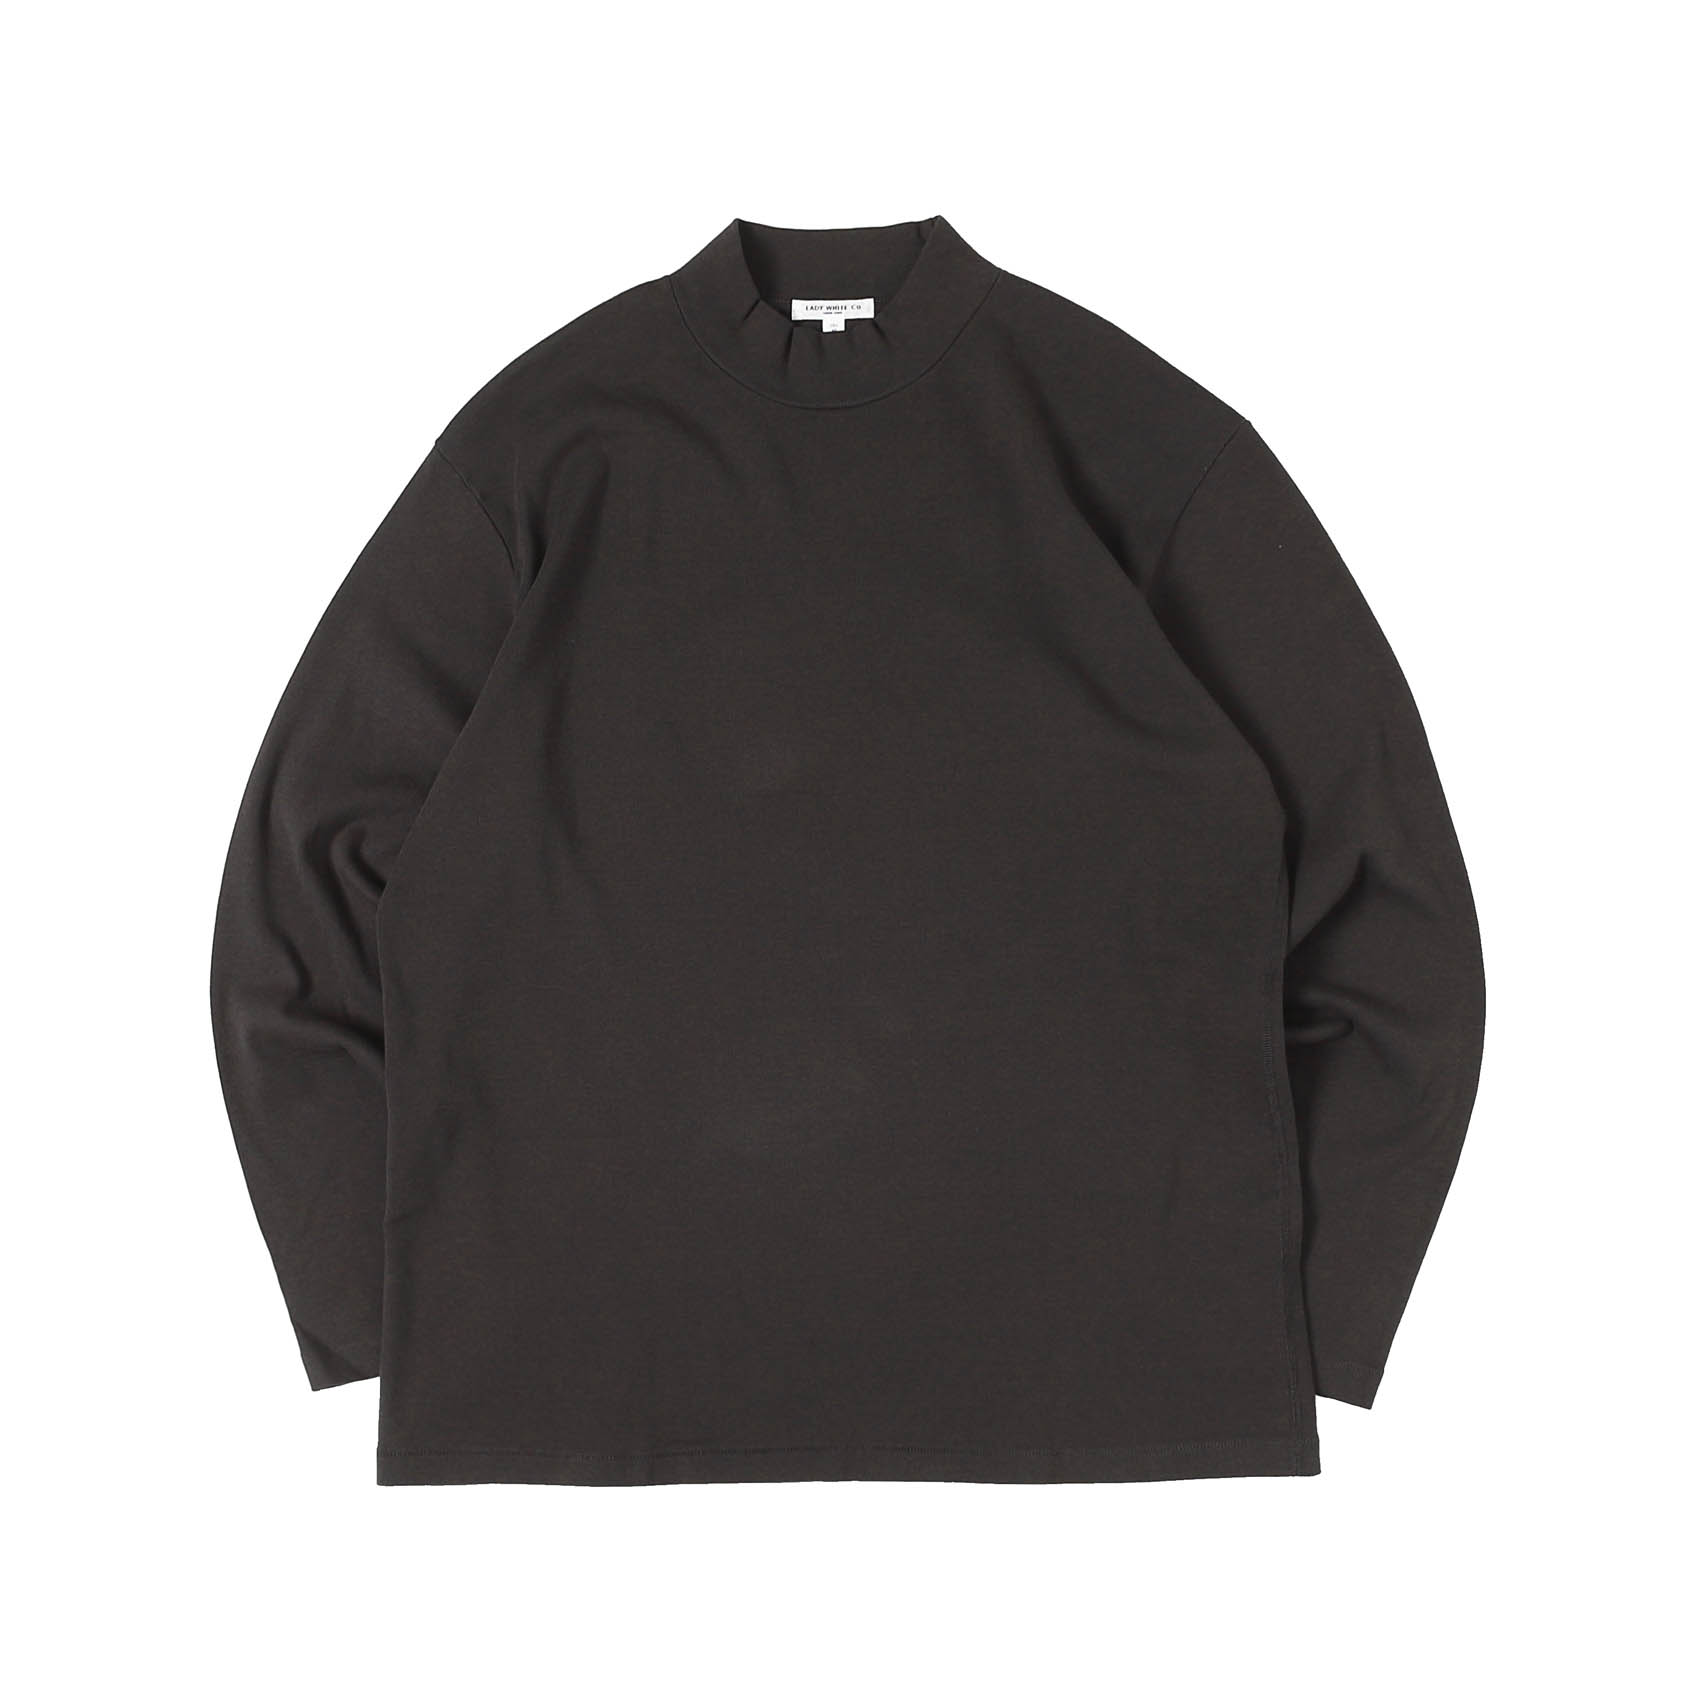 L/S MOCK NECK - TIRE BLACK